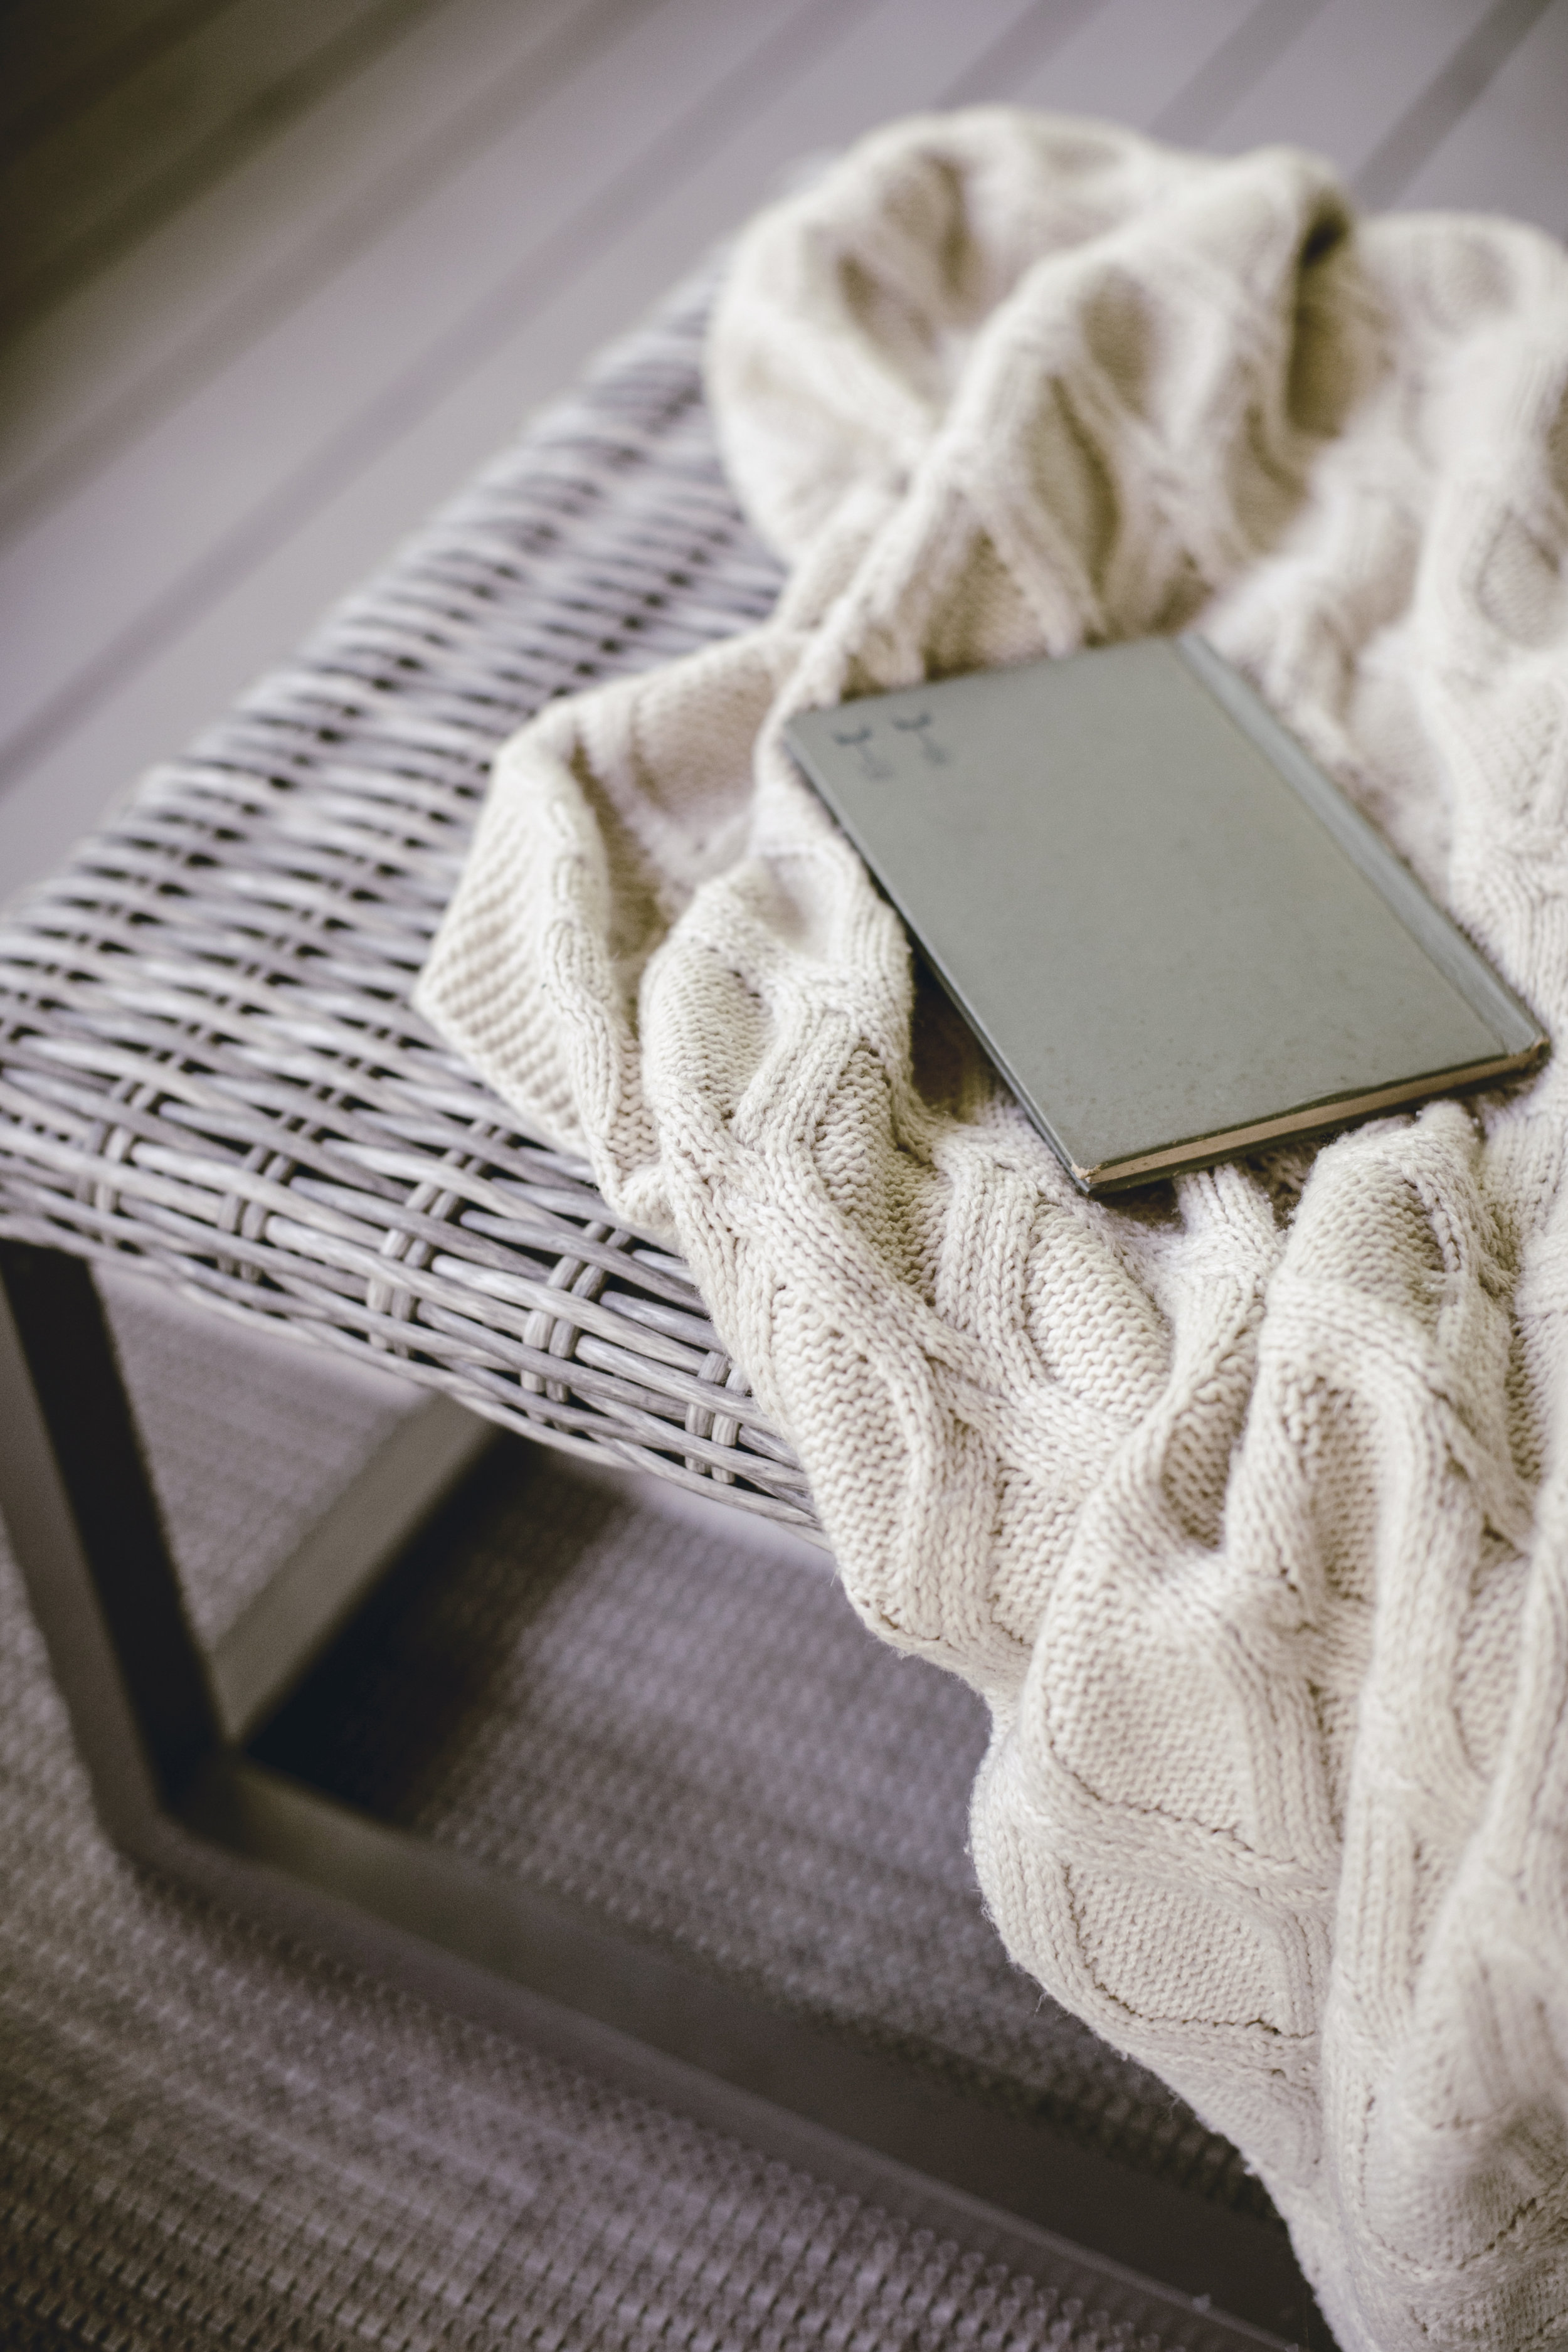 cozy blanket and book for reading on the back porch / heirloomed